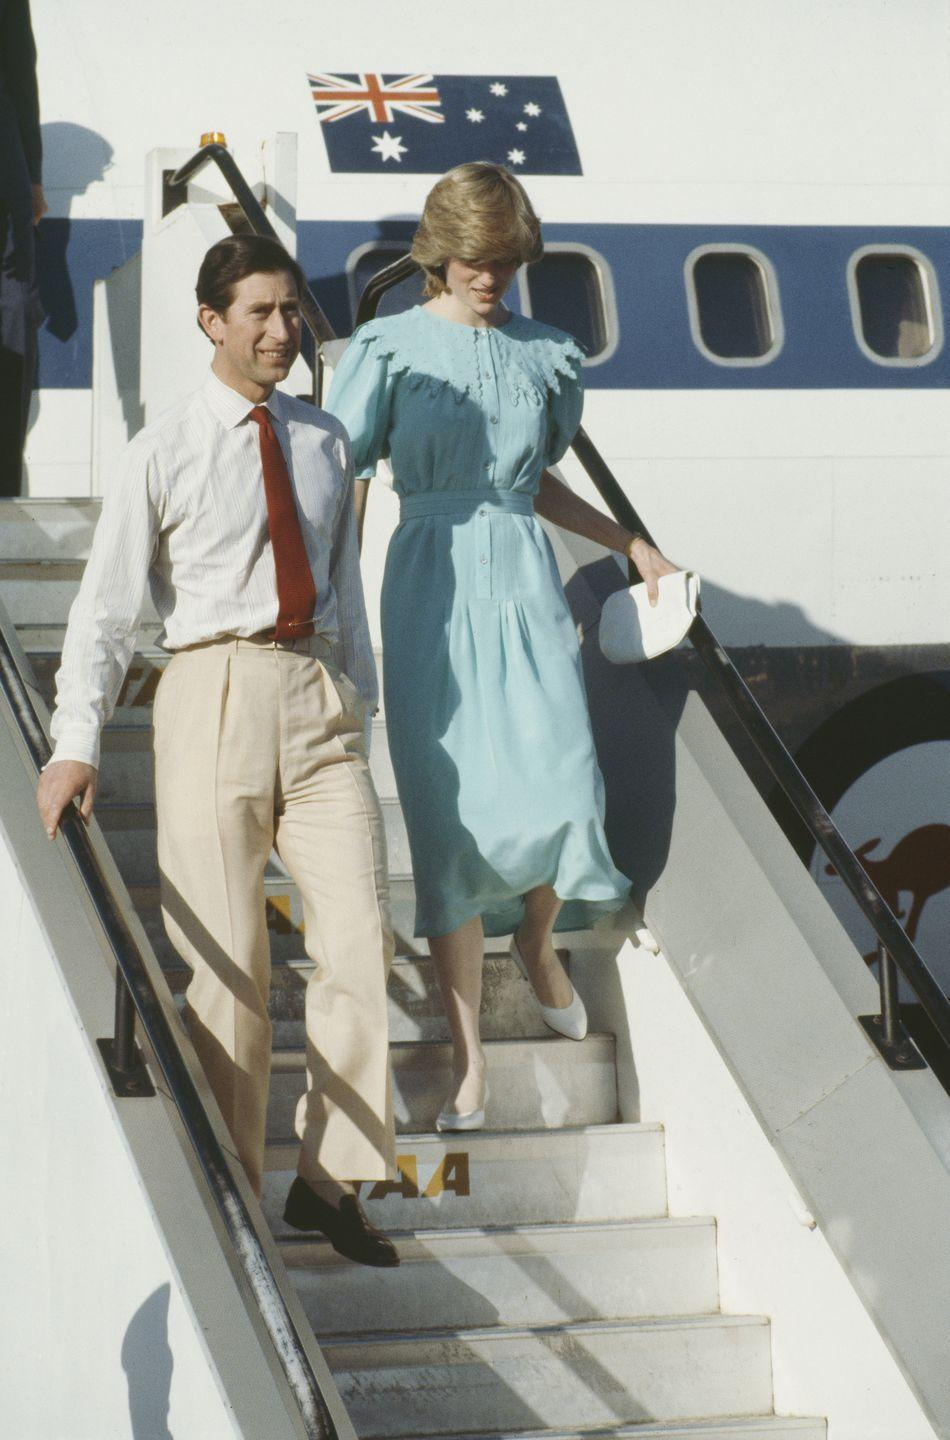 <p>Here's Charles and Di stepping off the plane and into their life on tour. A little awkward, but that might just be due to the length of Charles' pants.</p>